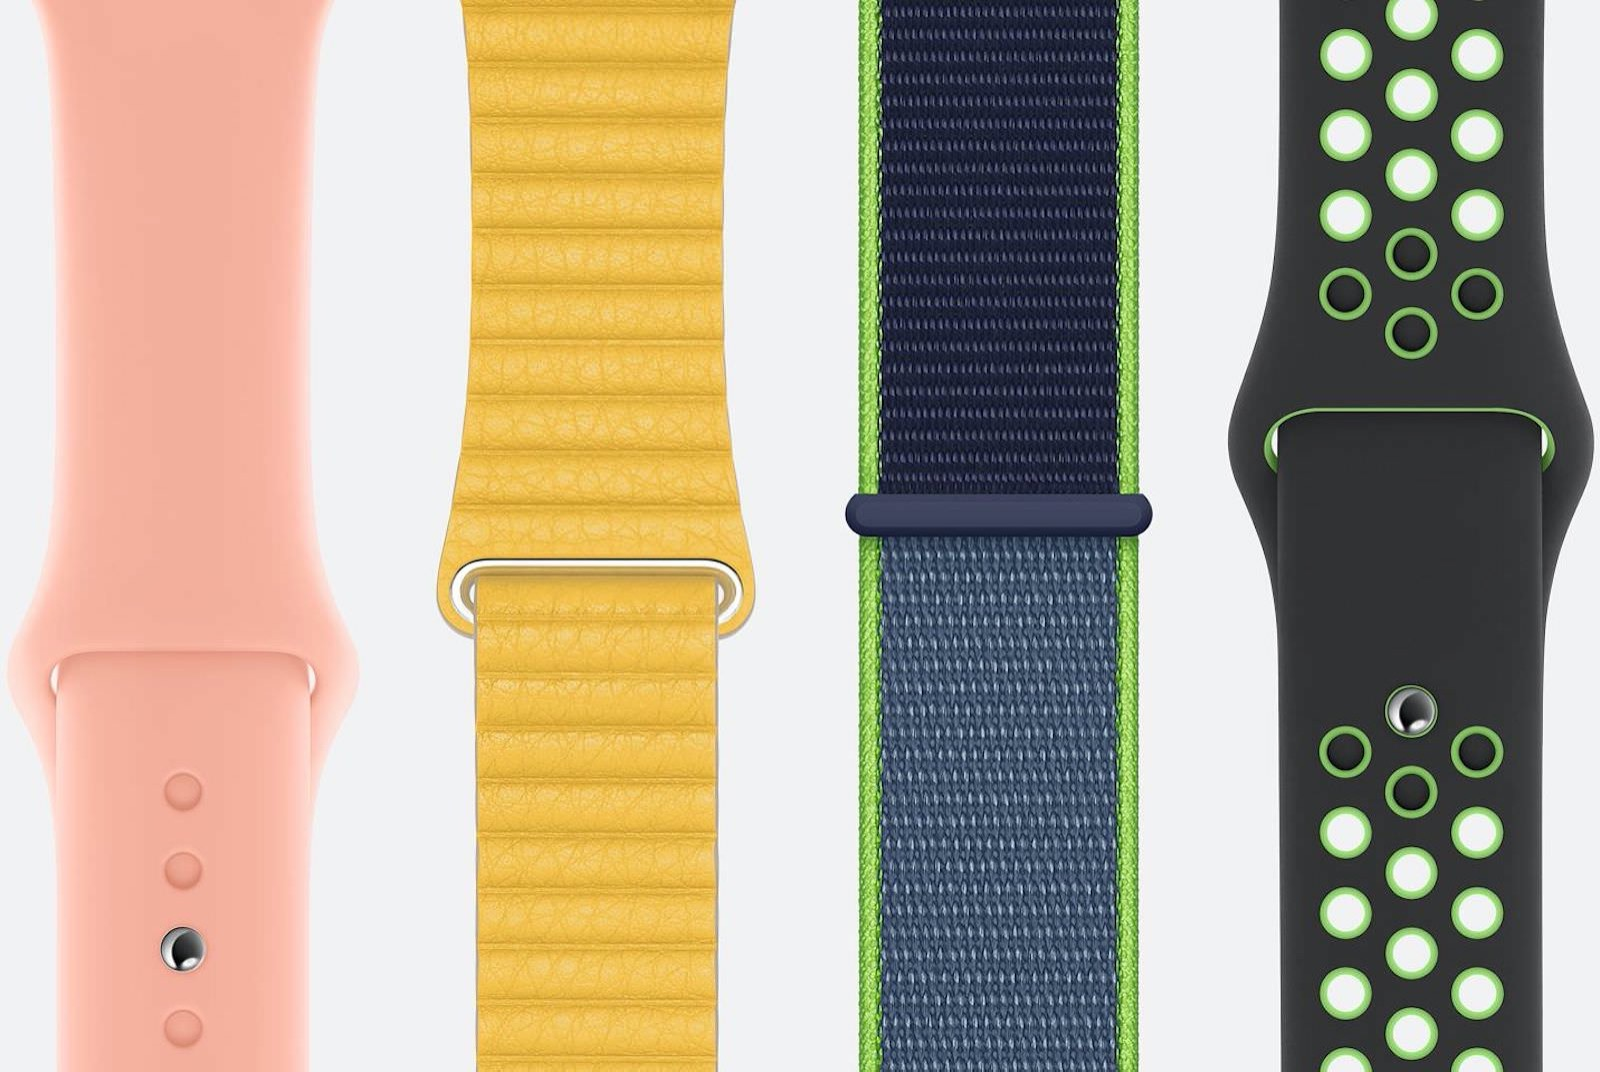 apple-watch-bands-header-202003.jpeg